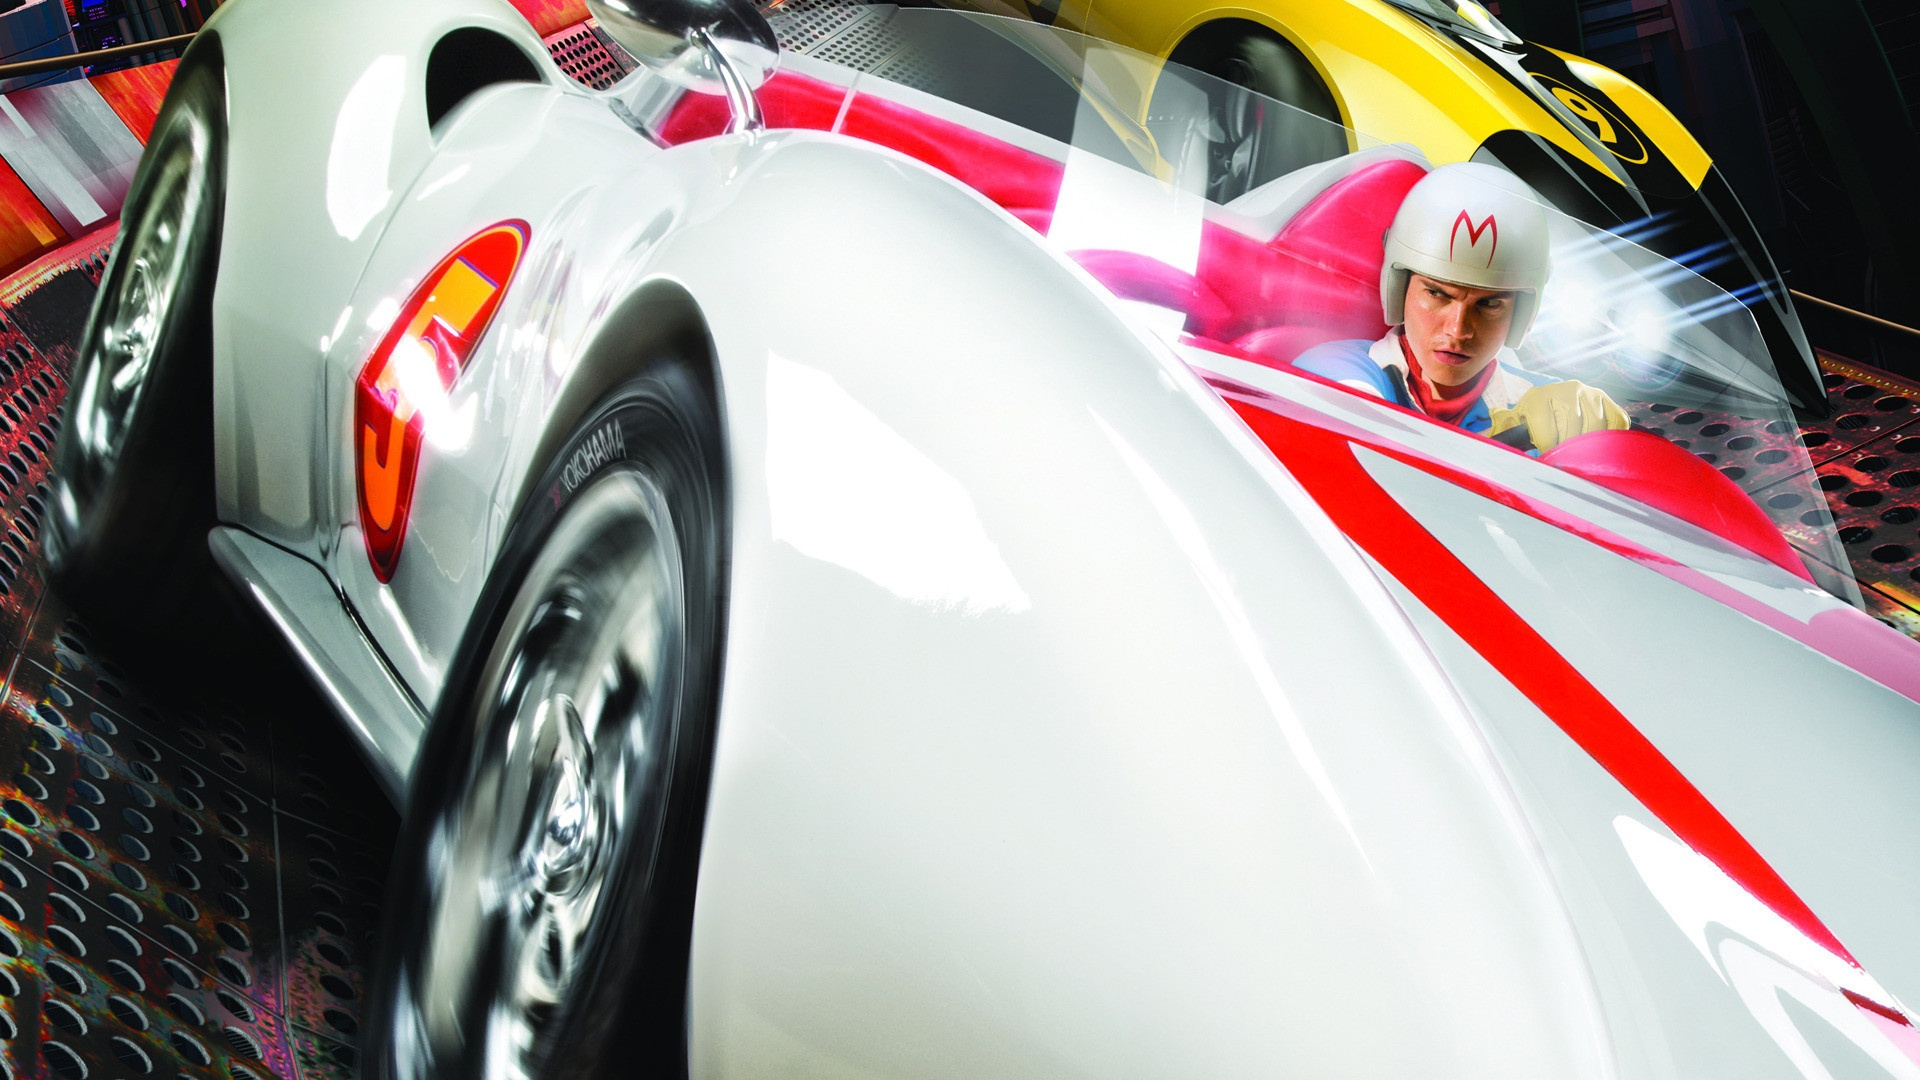 speed racer movie wallpapers in jpg format for free download